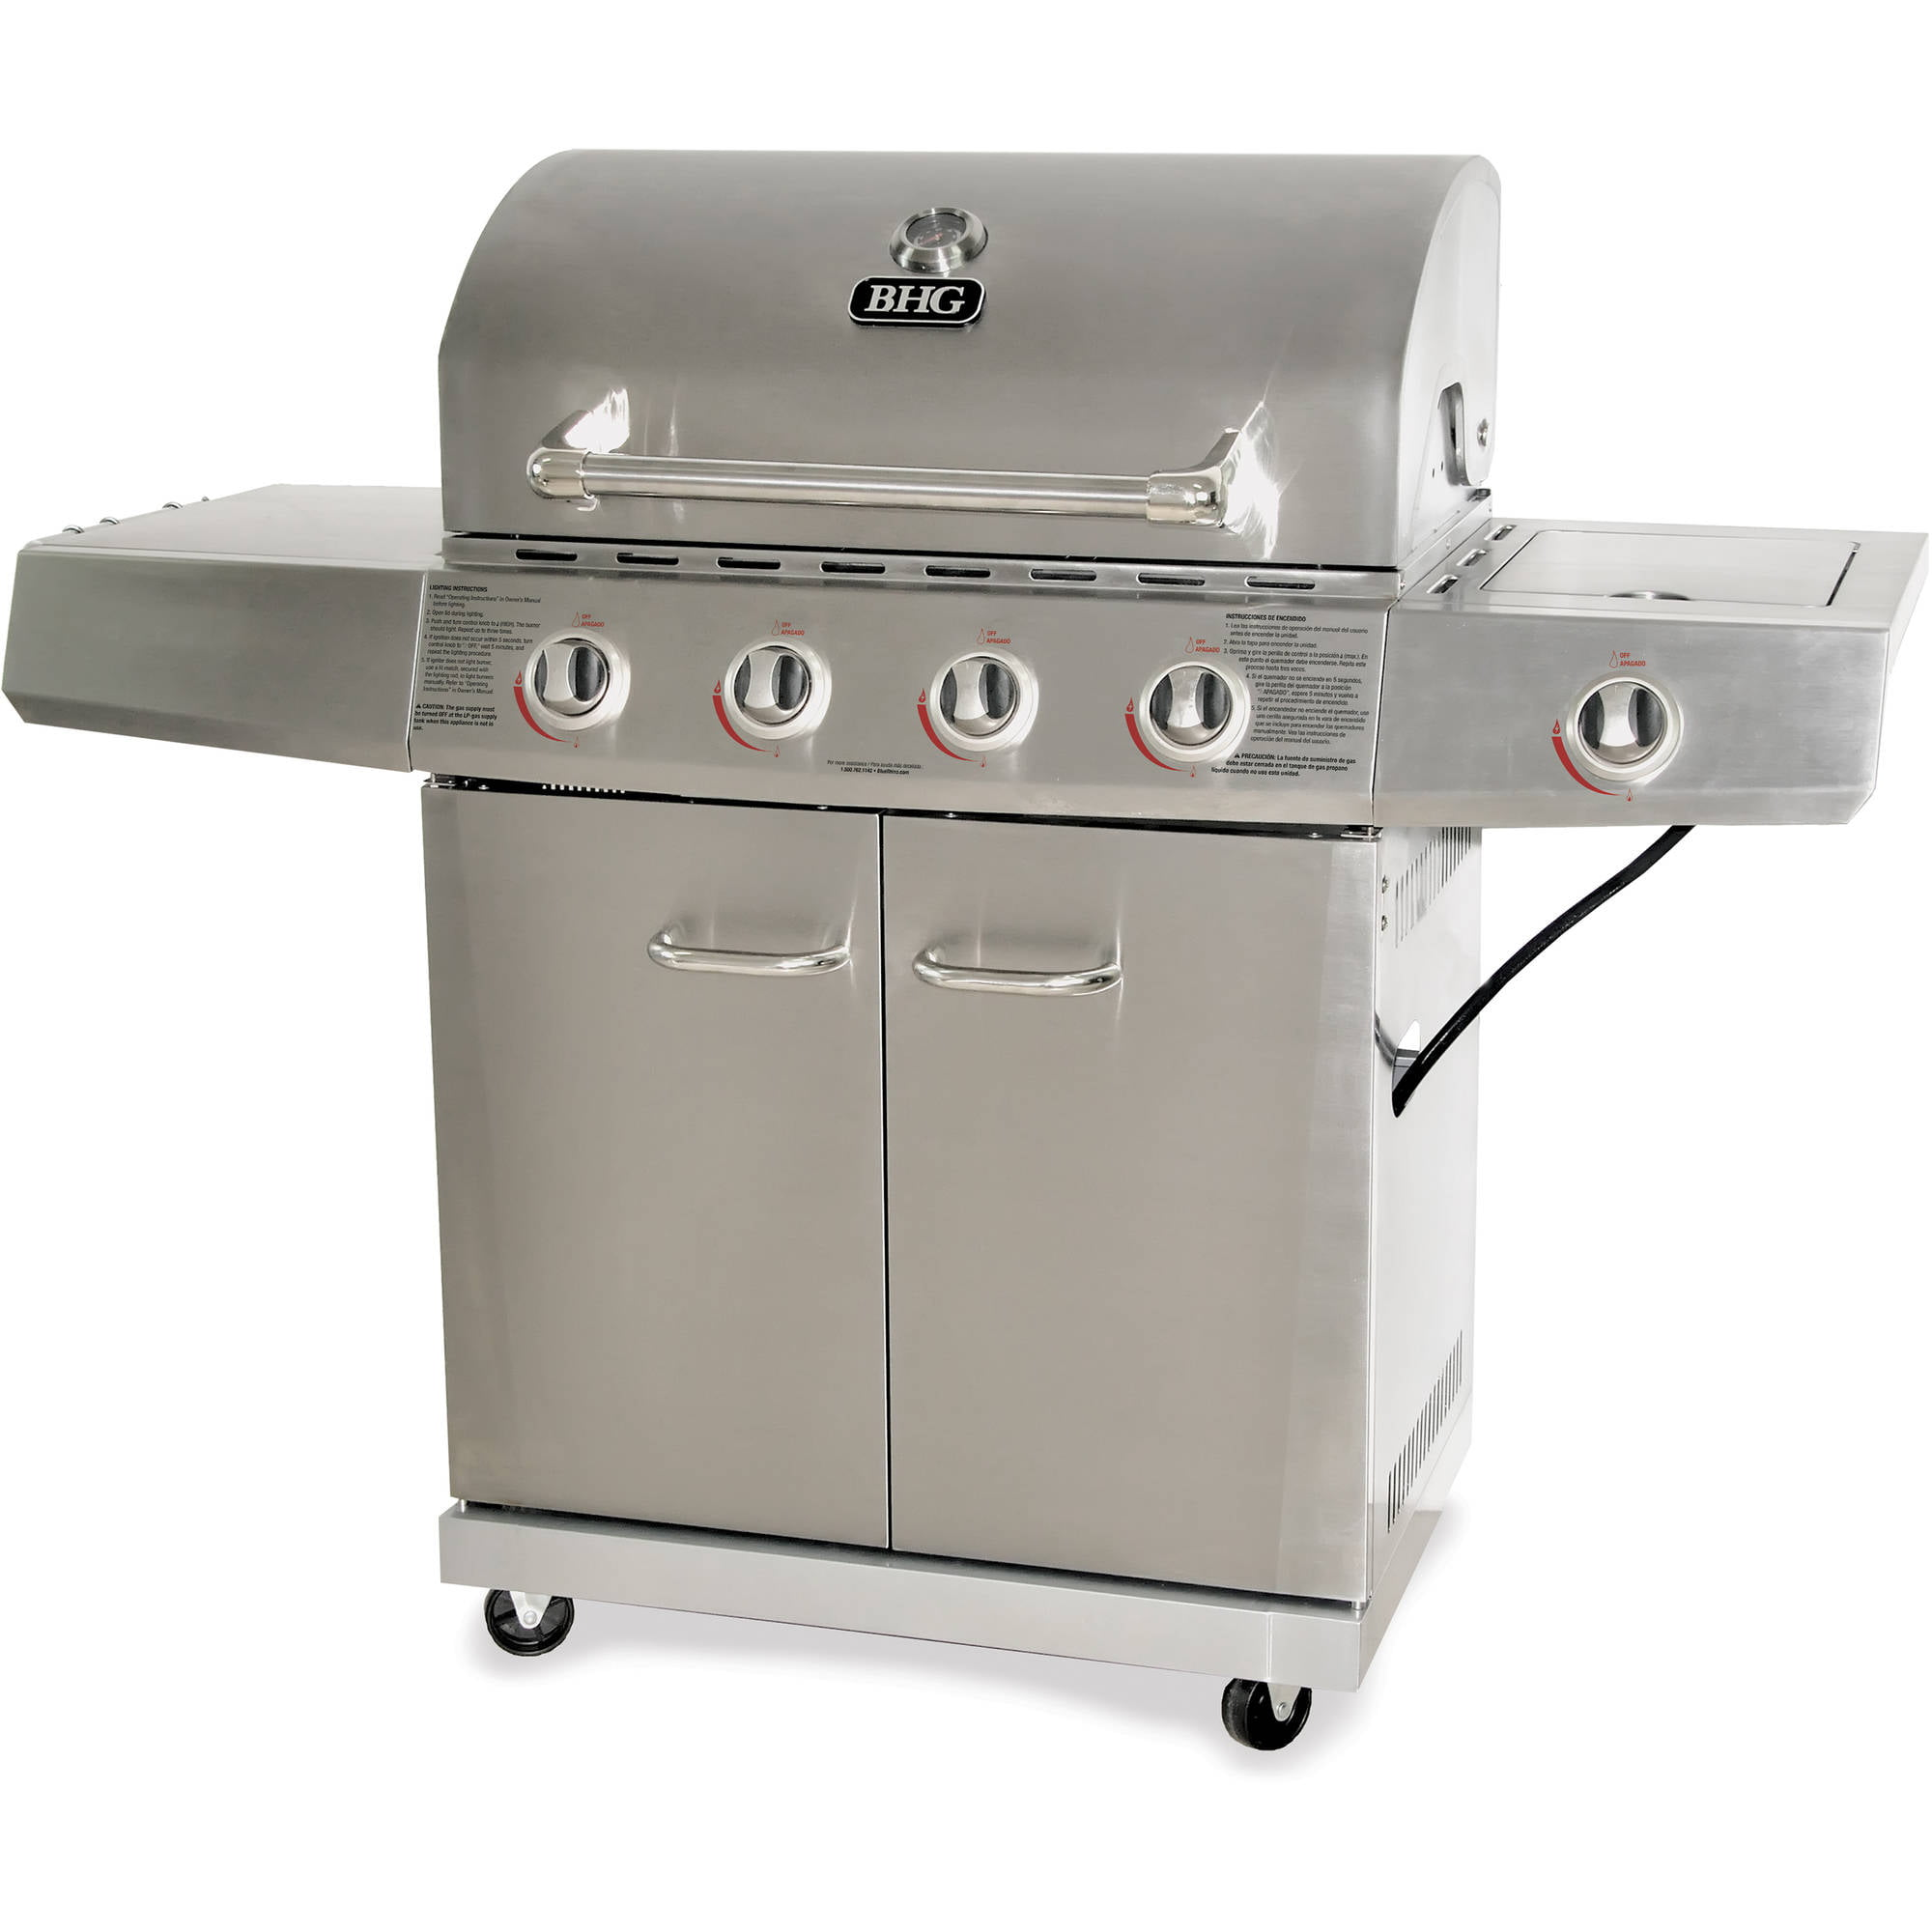 Better Homes And Gardens Test Kitchen Better Homes And Gardens 4 Burner Gas Grill Stainless Steel